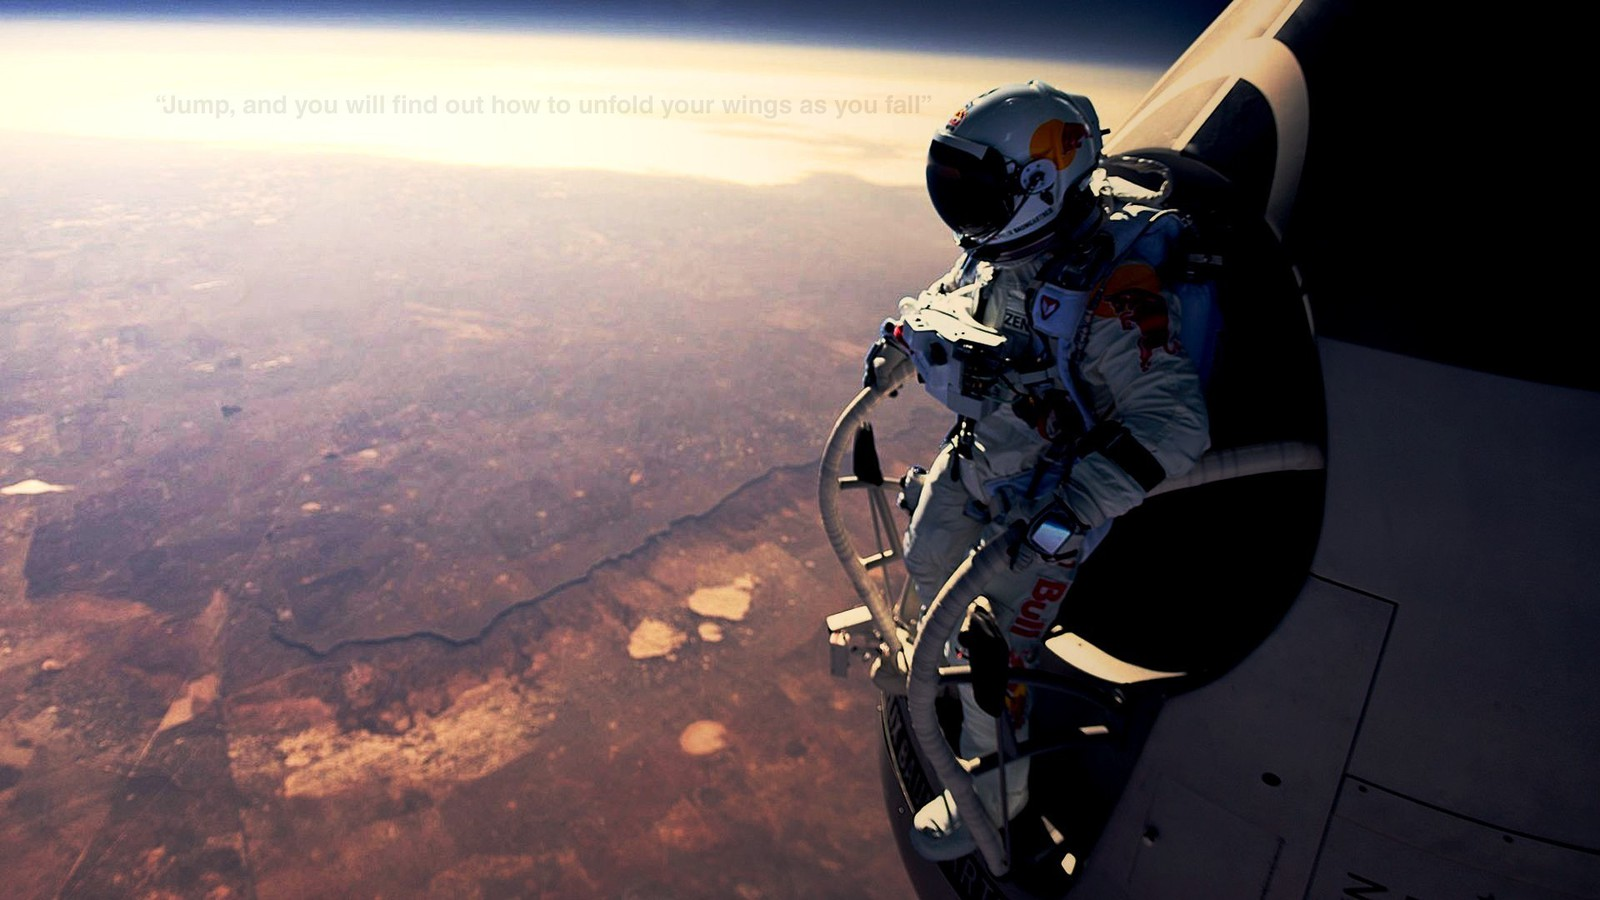 Red Bull Wallpaper Hd Iphone Felix Baumgartner Red Bull Space Suits Stratosphere